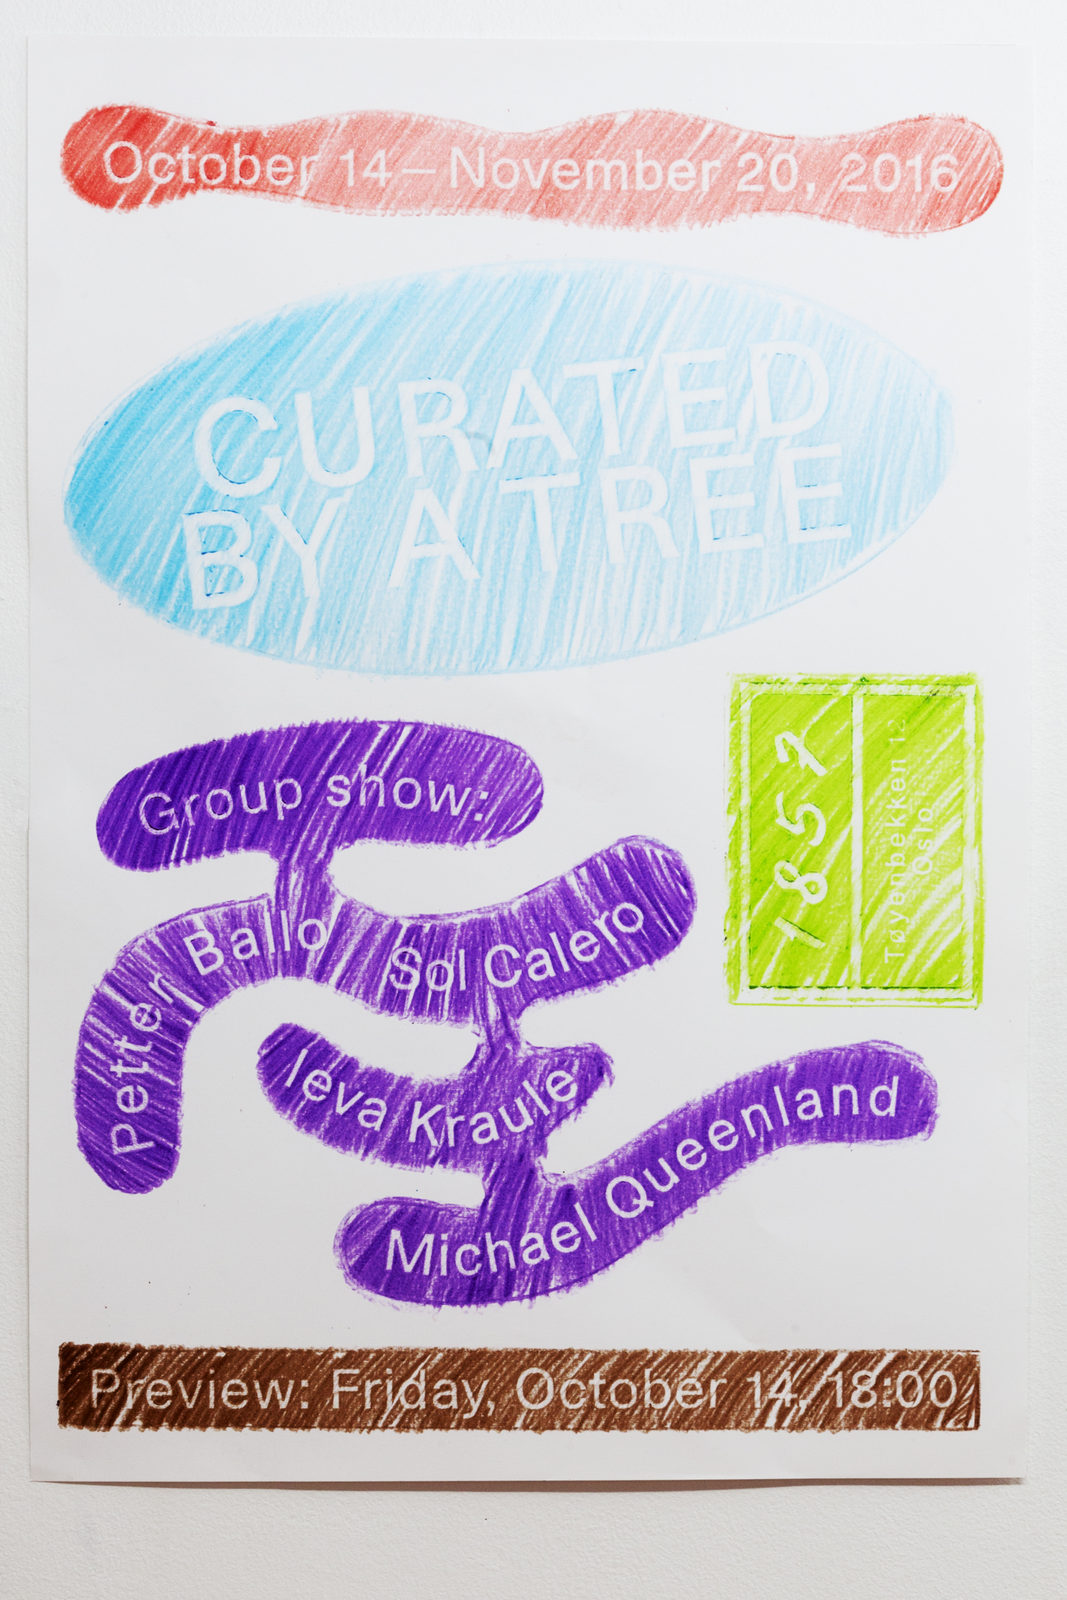 XX-Curated by a Tree-Poster